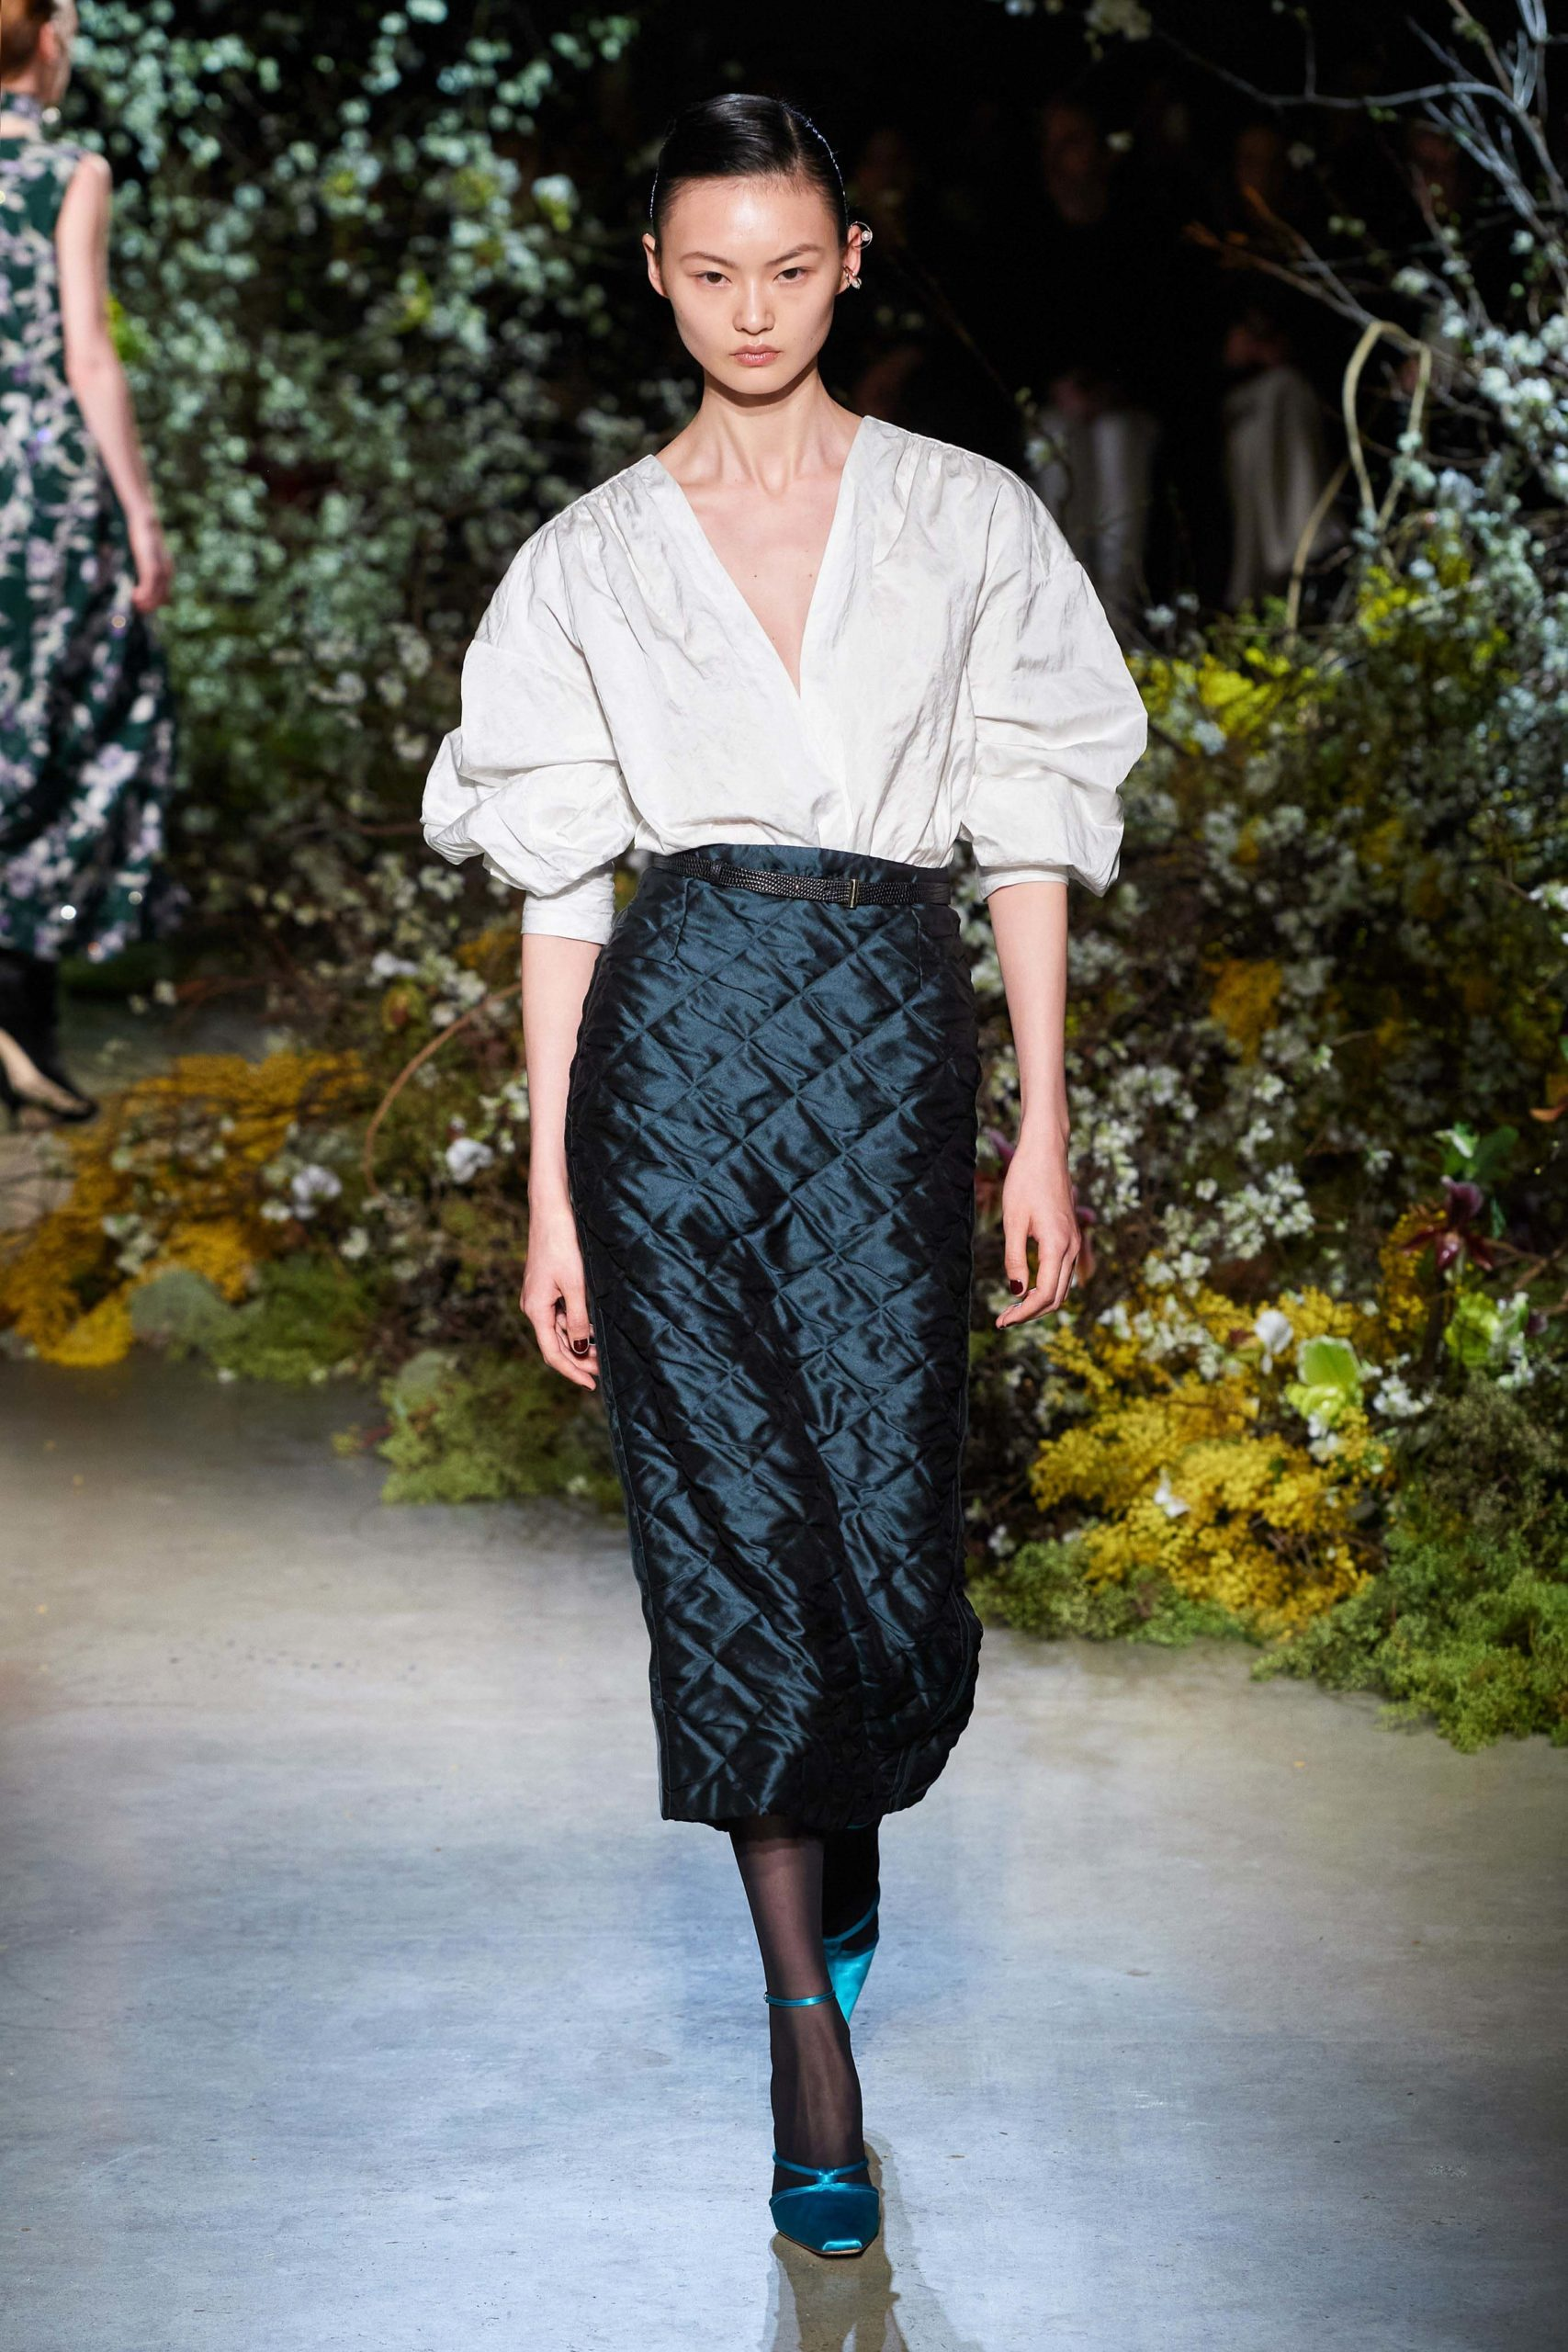 Jason Wu Fall 2020 trends runway coverage Ready To Wear Vogue manche et skirt square quilted